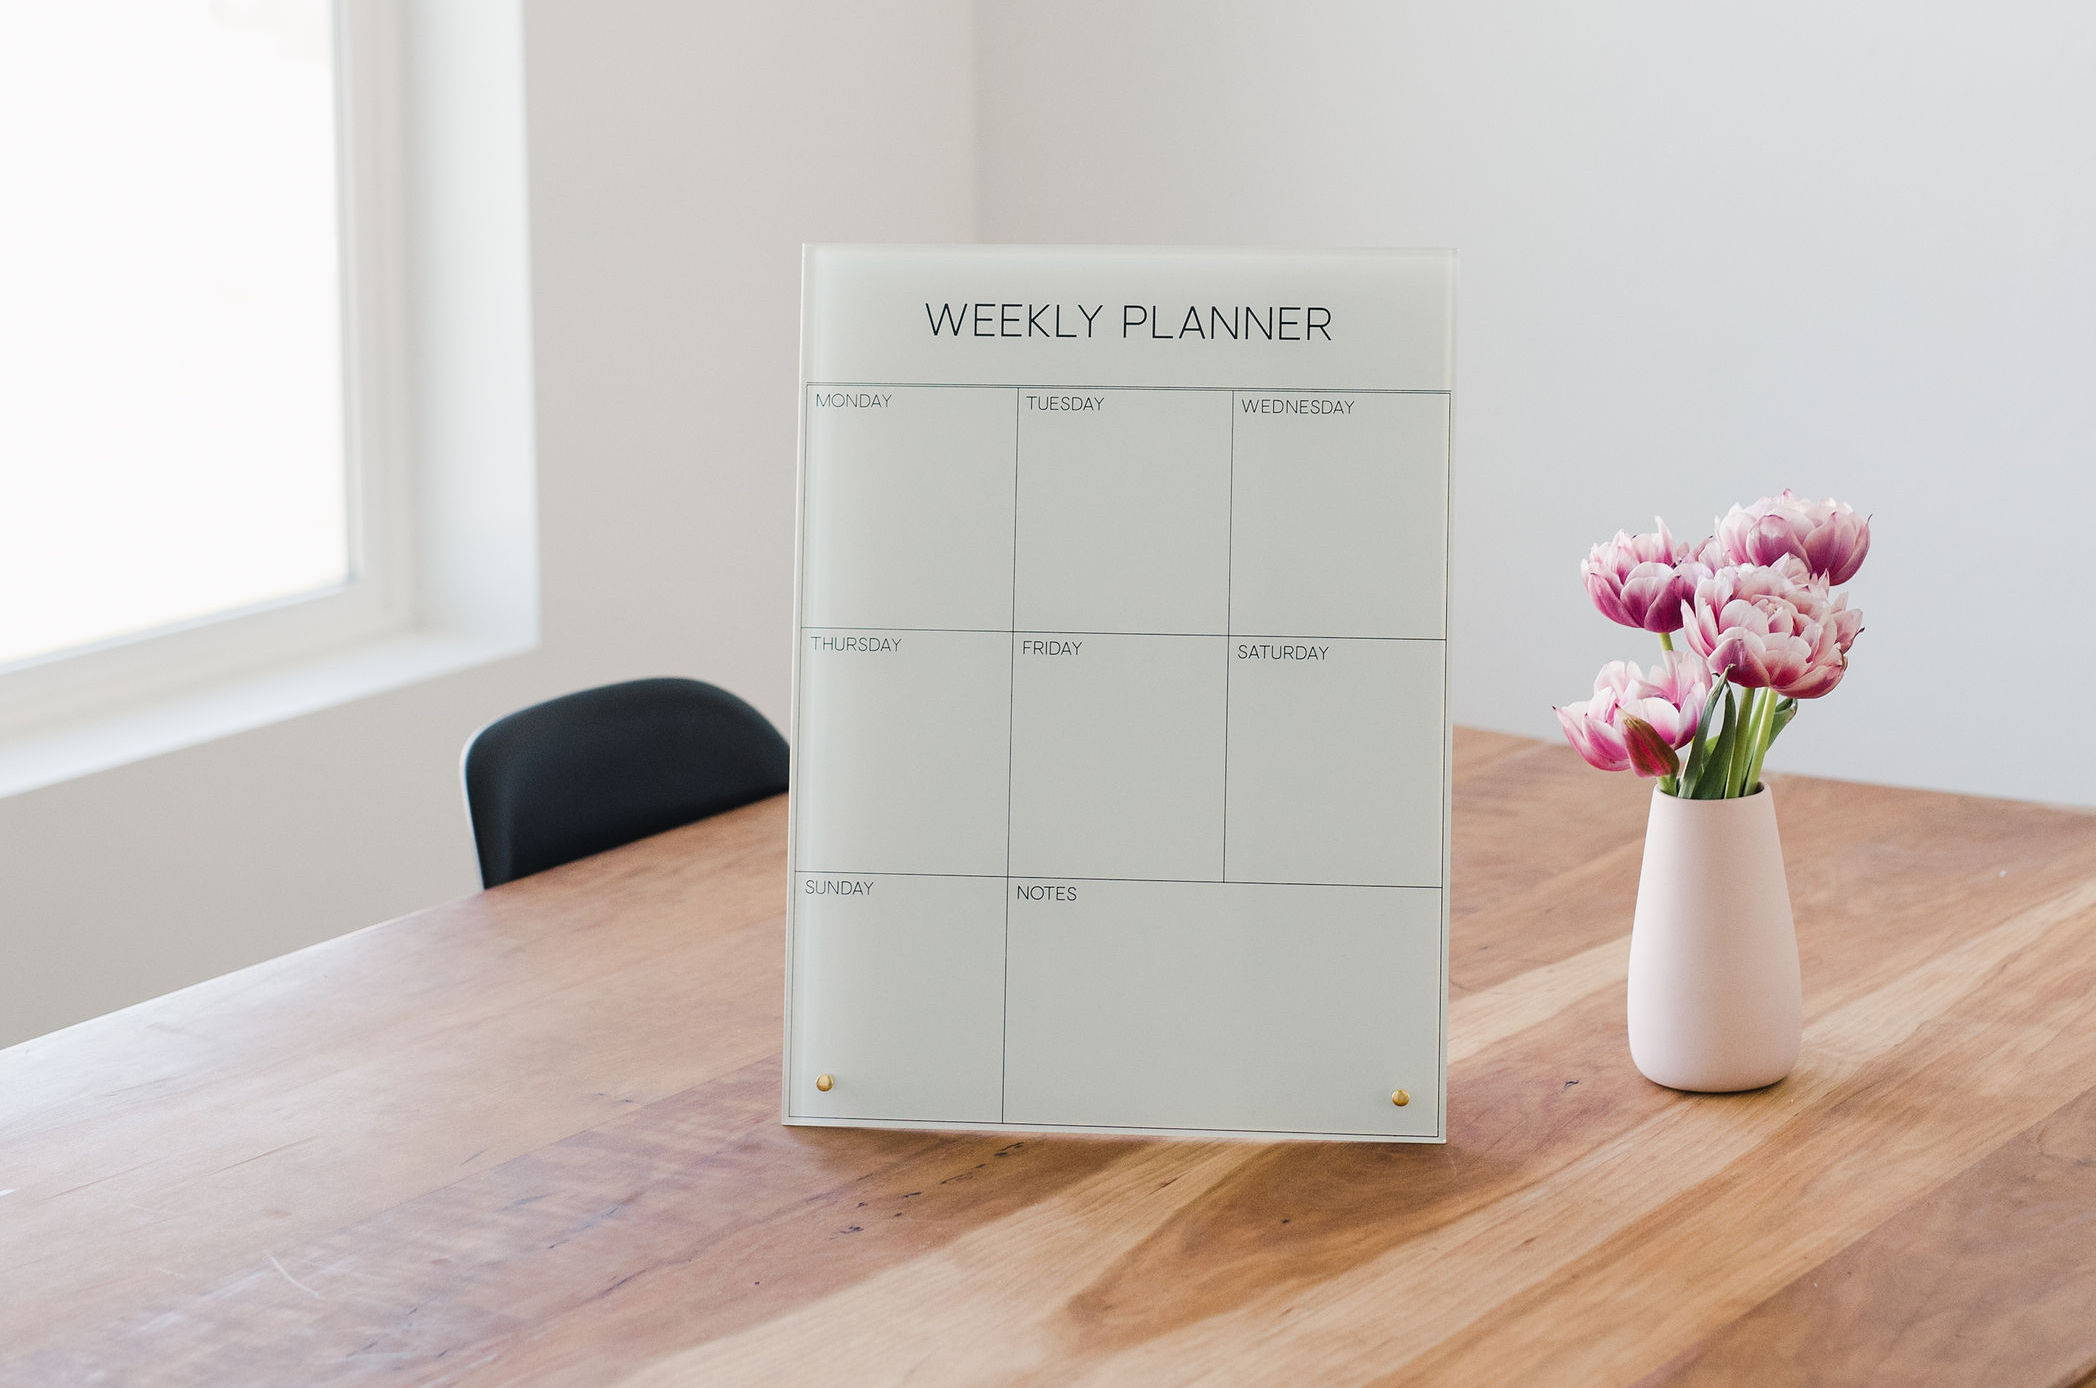 weekly planner glass magnetic dry erase board